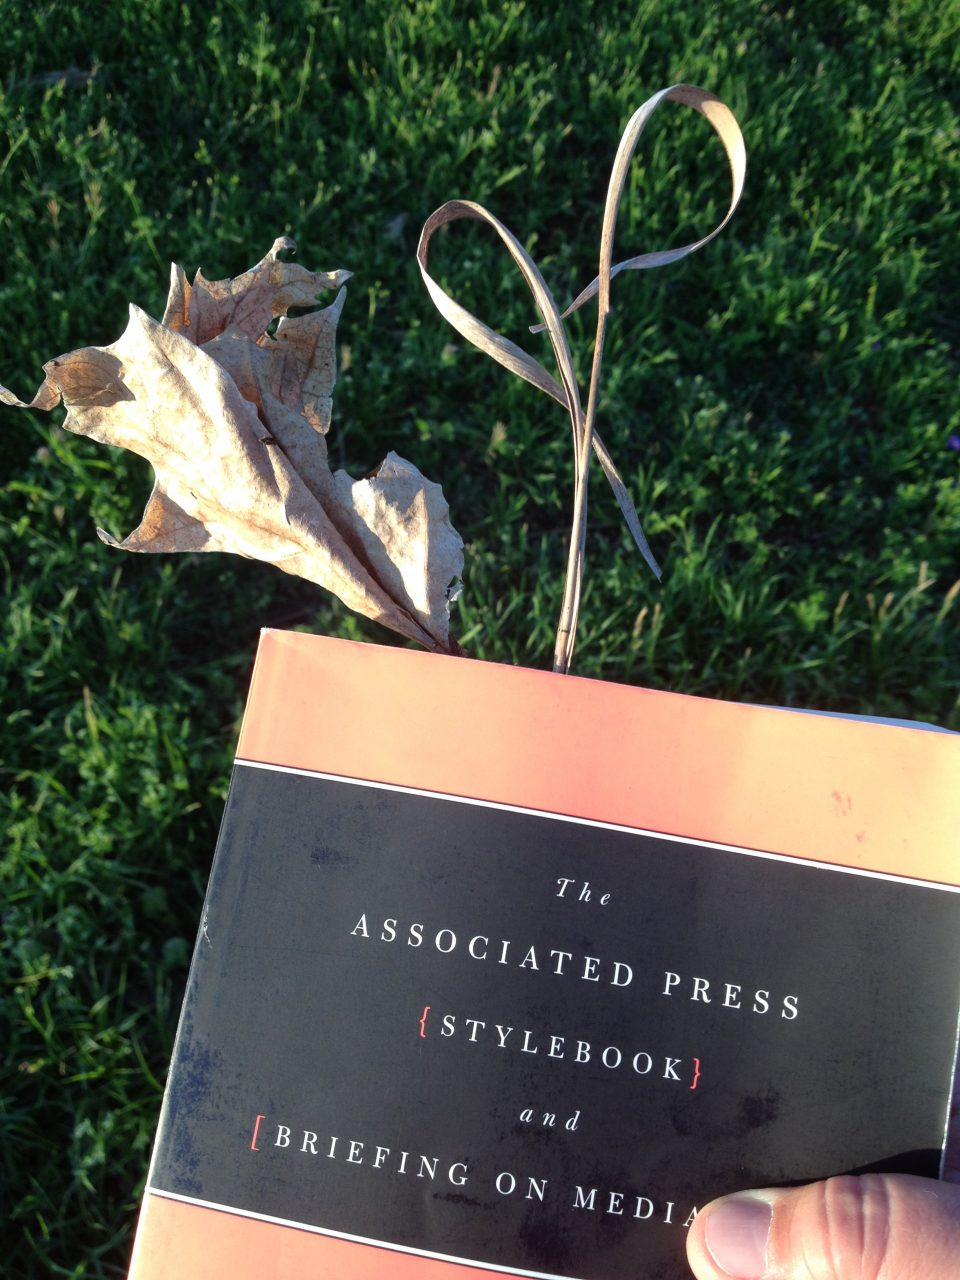 I use this out-of-date AP stylebook that would have been recycled to hold fragile leaves.